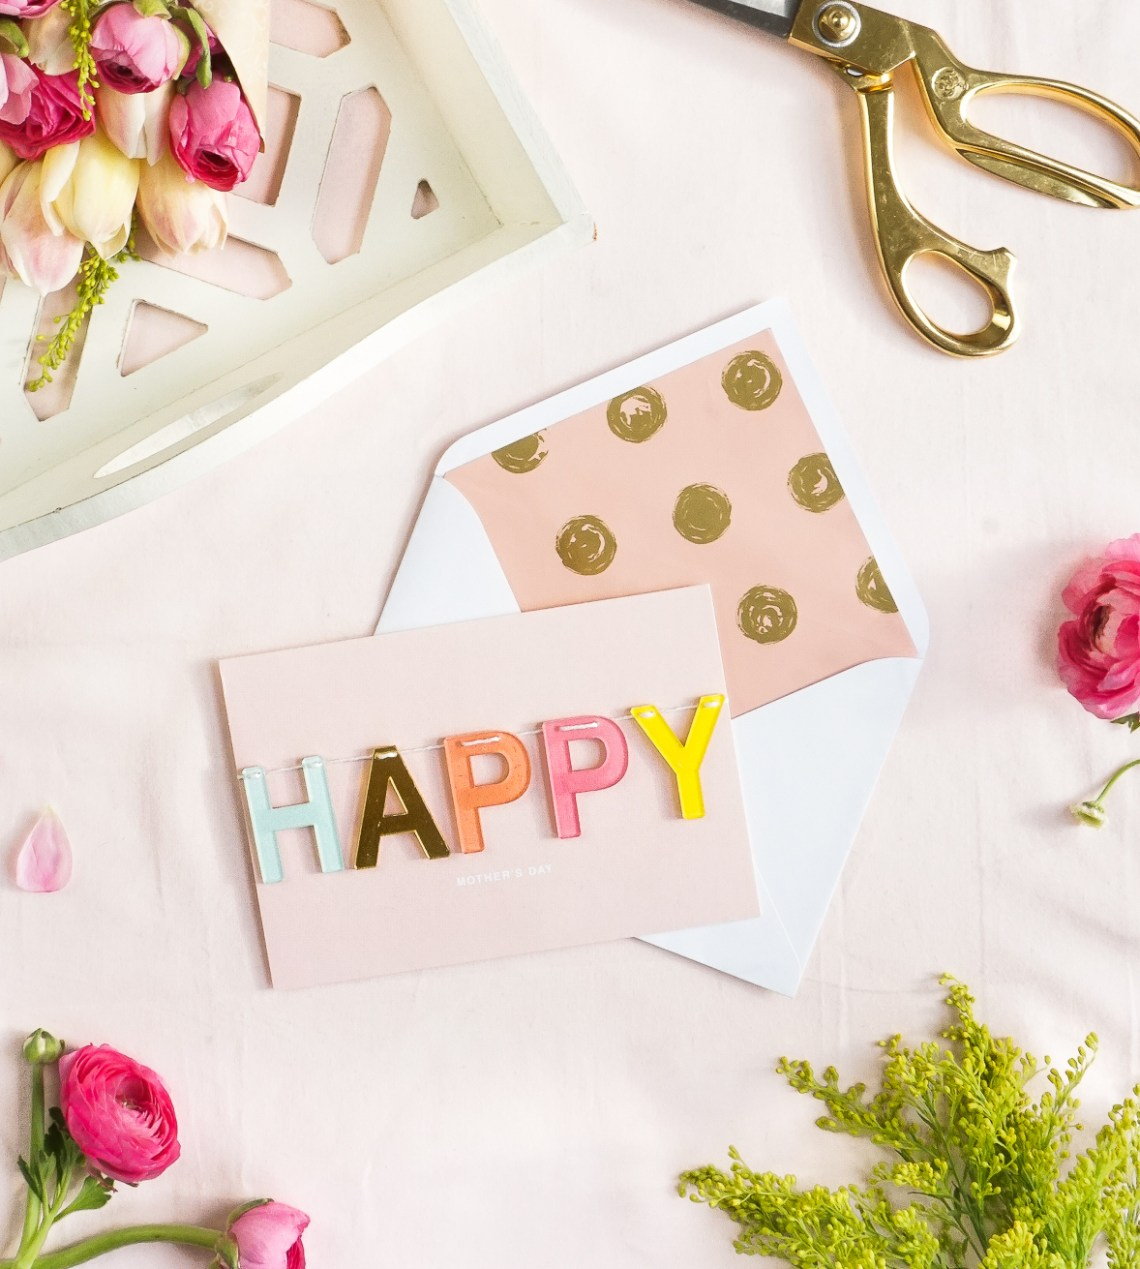 3 Ways to Personalize Store Bought Cards for Mother's Day | Francois et Moi